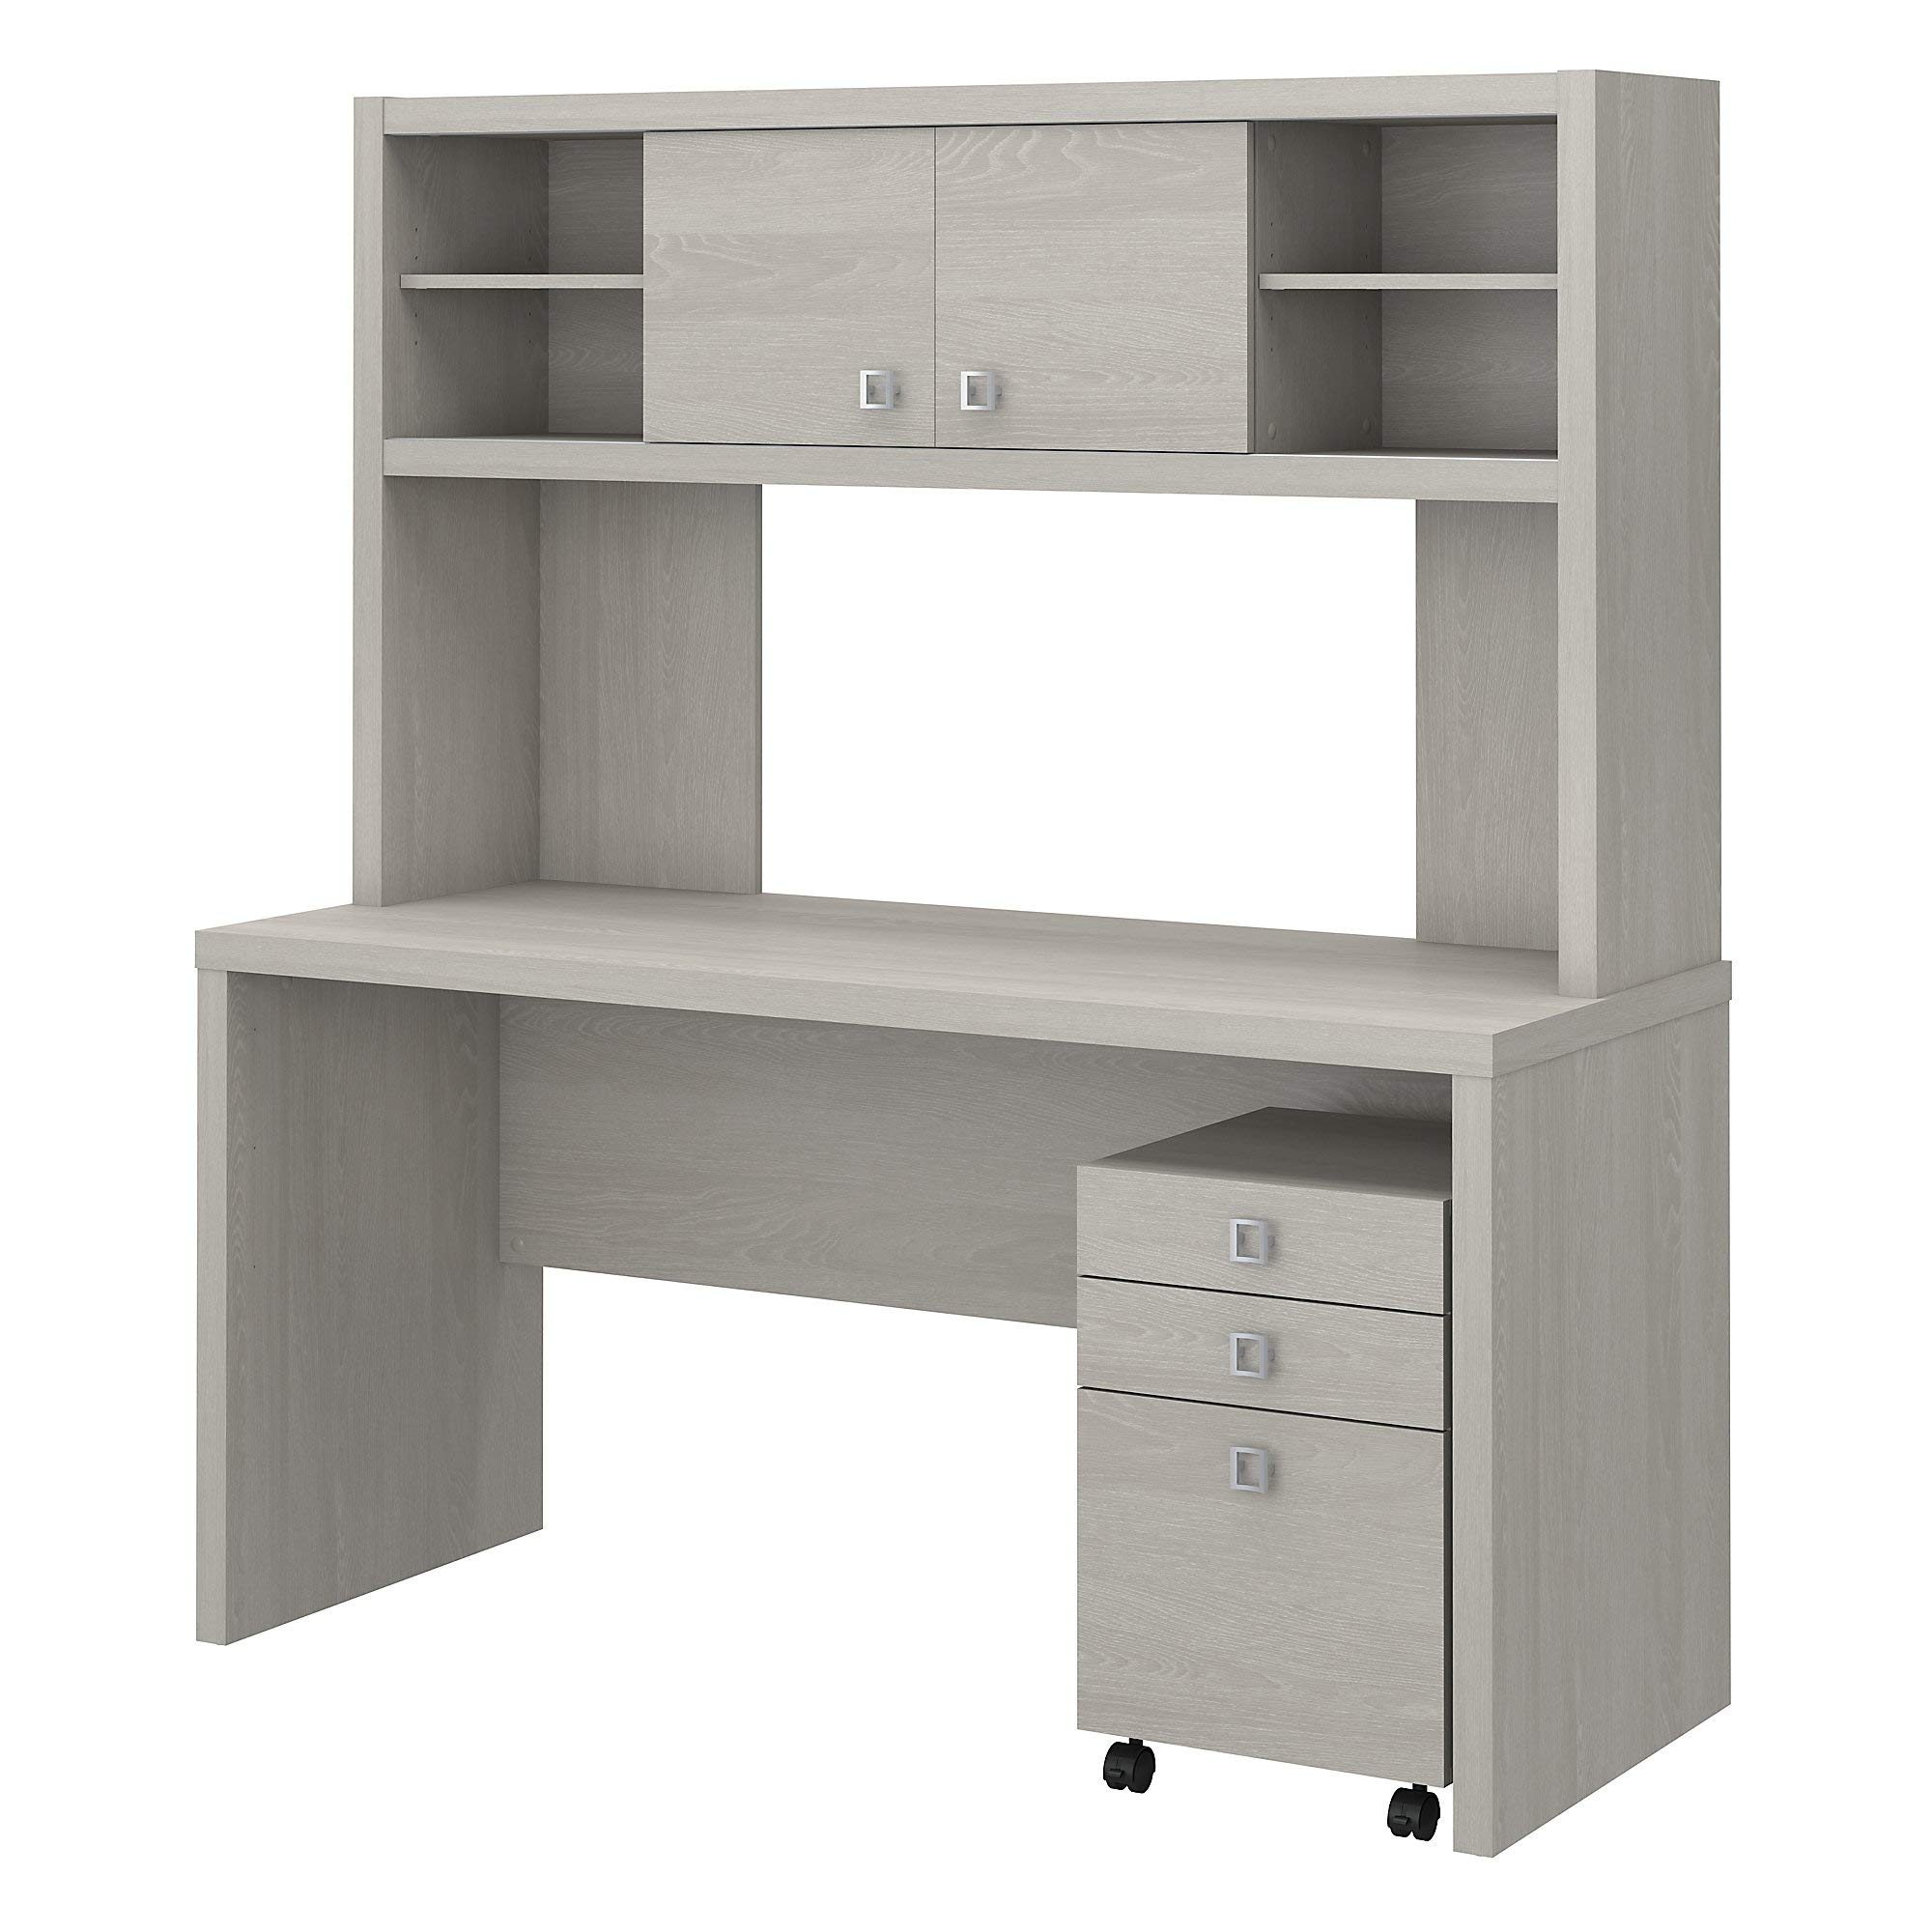 Office by kathy ireland Echo Credenza Desk with Hutch and Mobile File Cabinet in Gray Sand by Office by kathy ireland